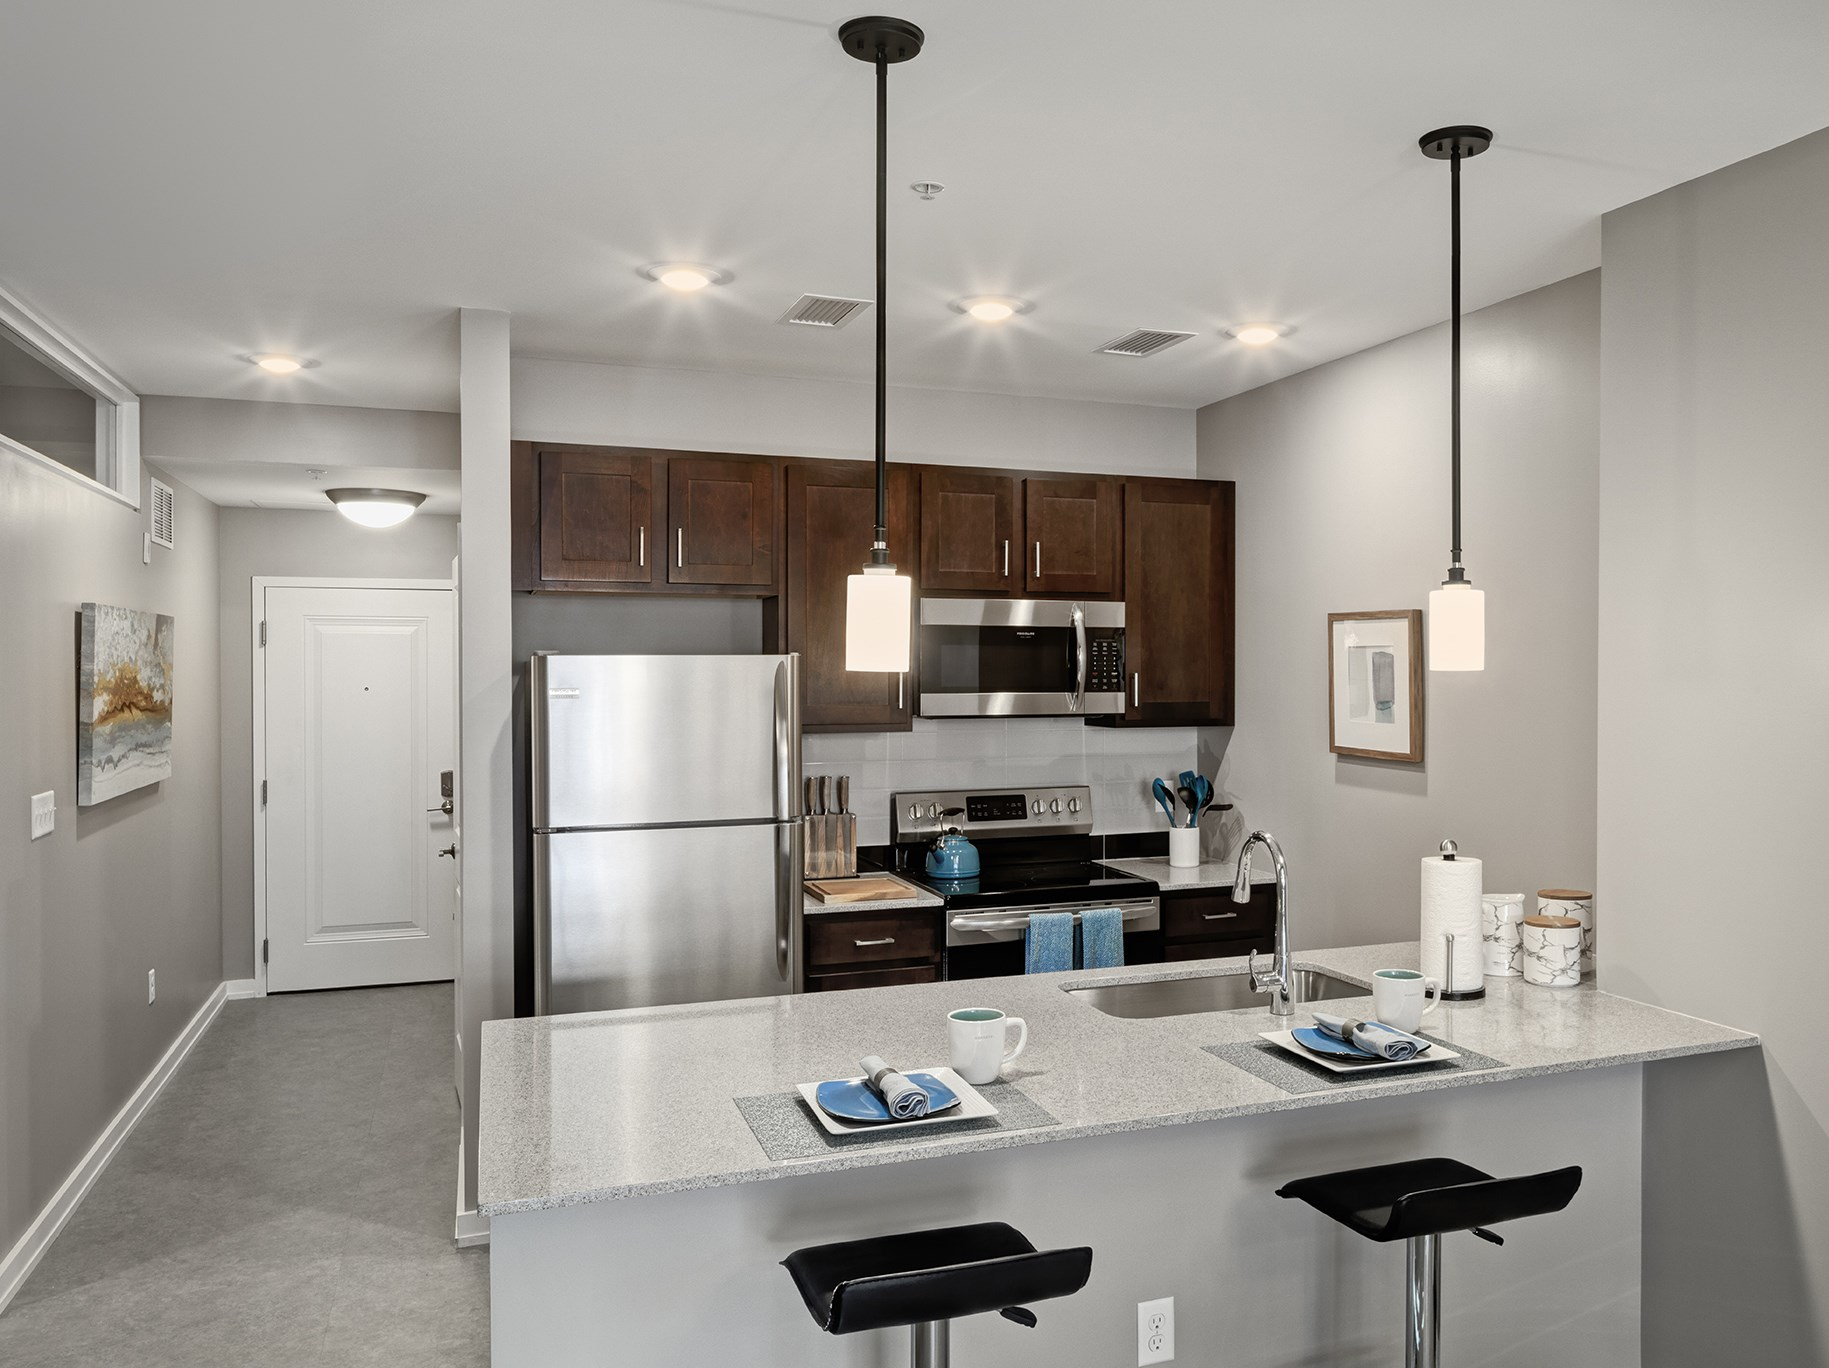 Premium Full-Size Stainless Steel Appliances and Kitchen Islands with Quartz Countertops are Perfect for Entertaining or the Casual Gourmet at The News, Troy